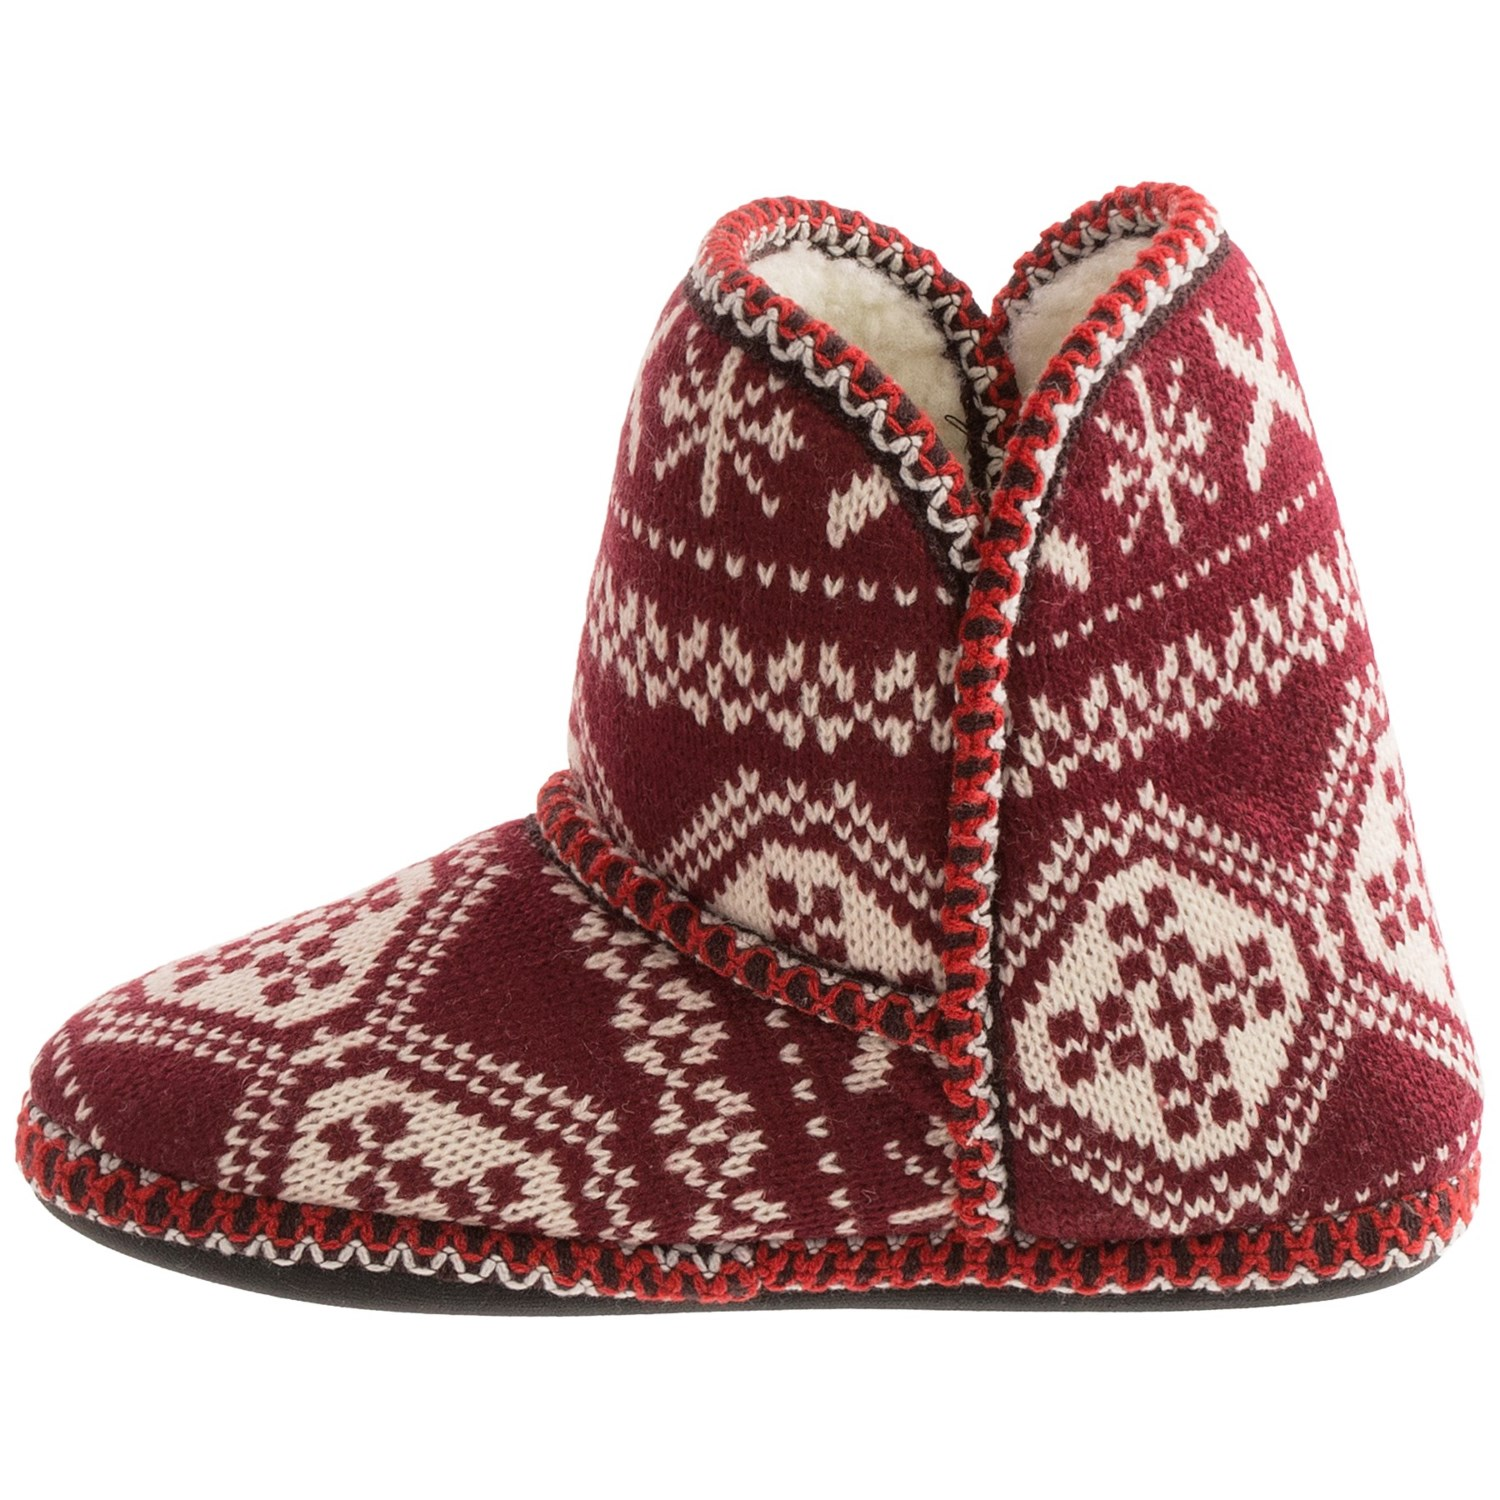 muk luks knit slipper boots for save 88